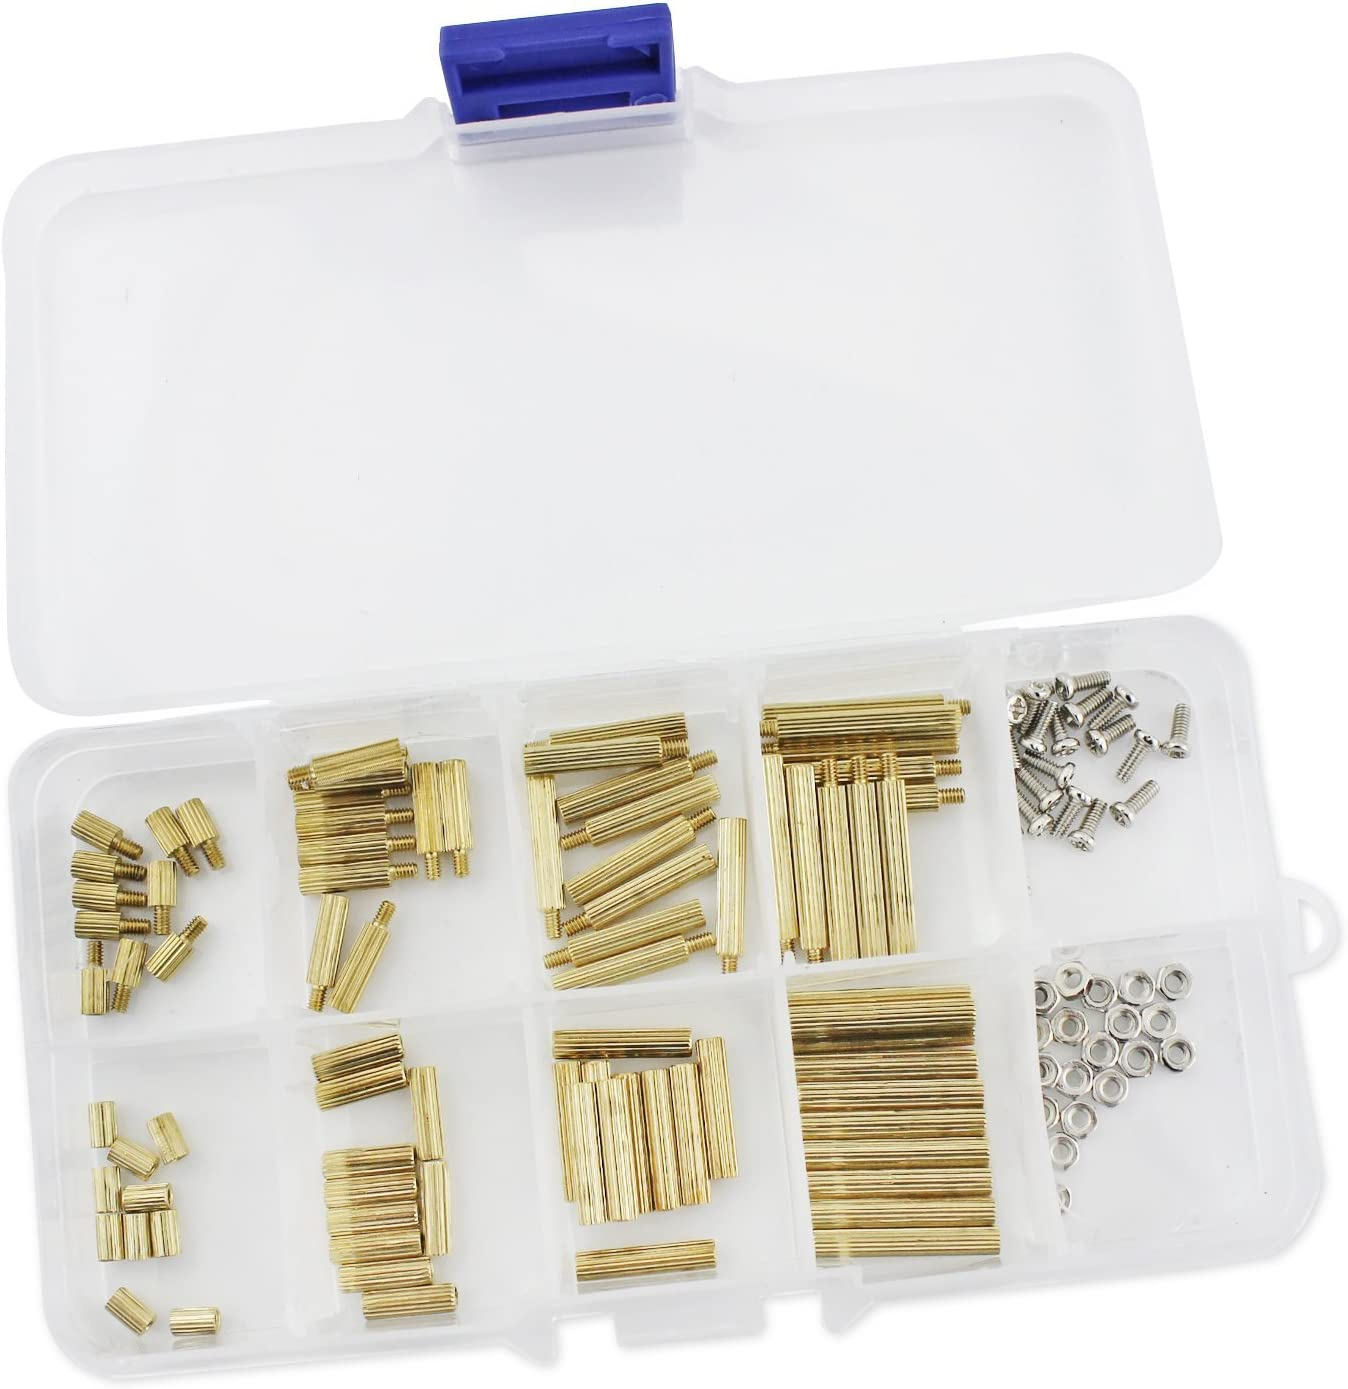 Aussel 120pcs M2 brass Spacer Standoff nut Assortment Kit by Aussel